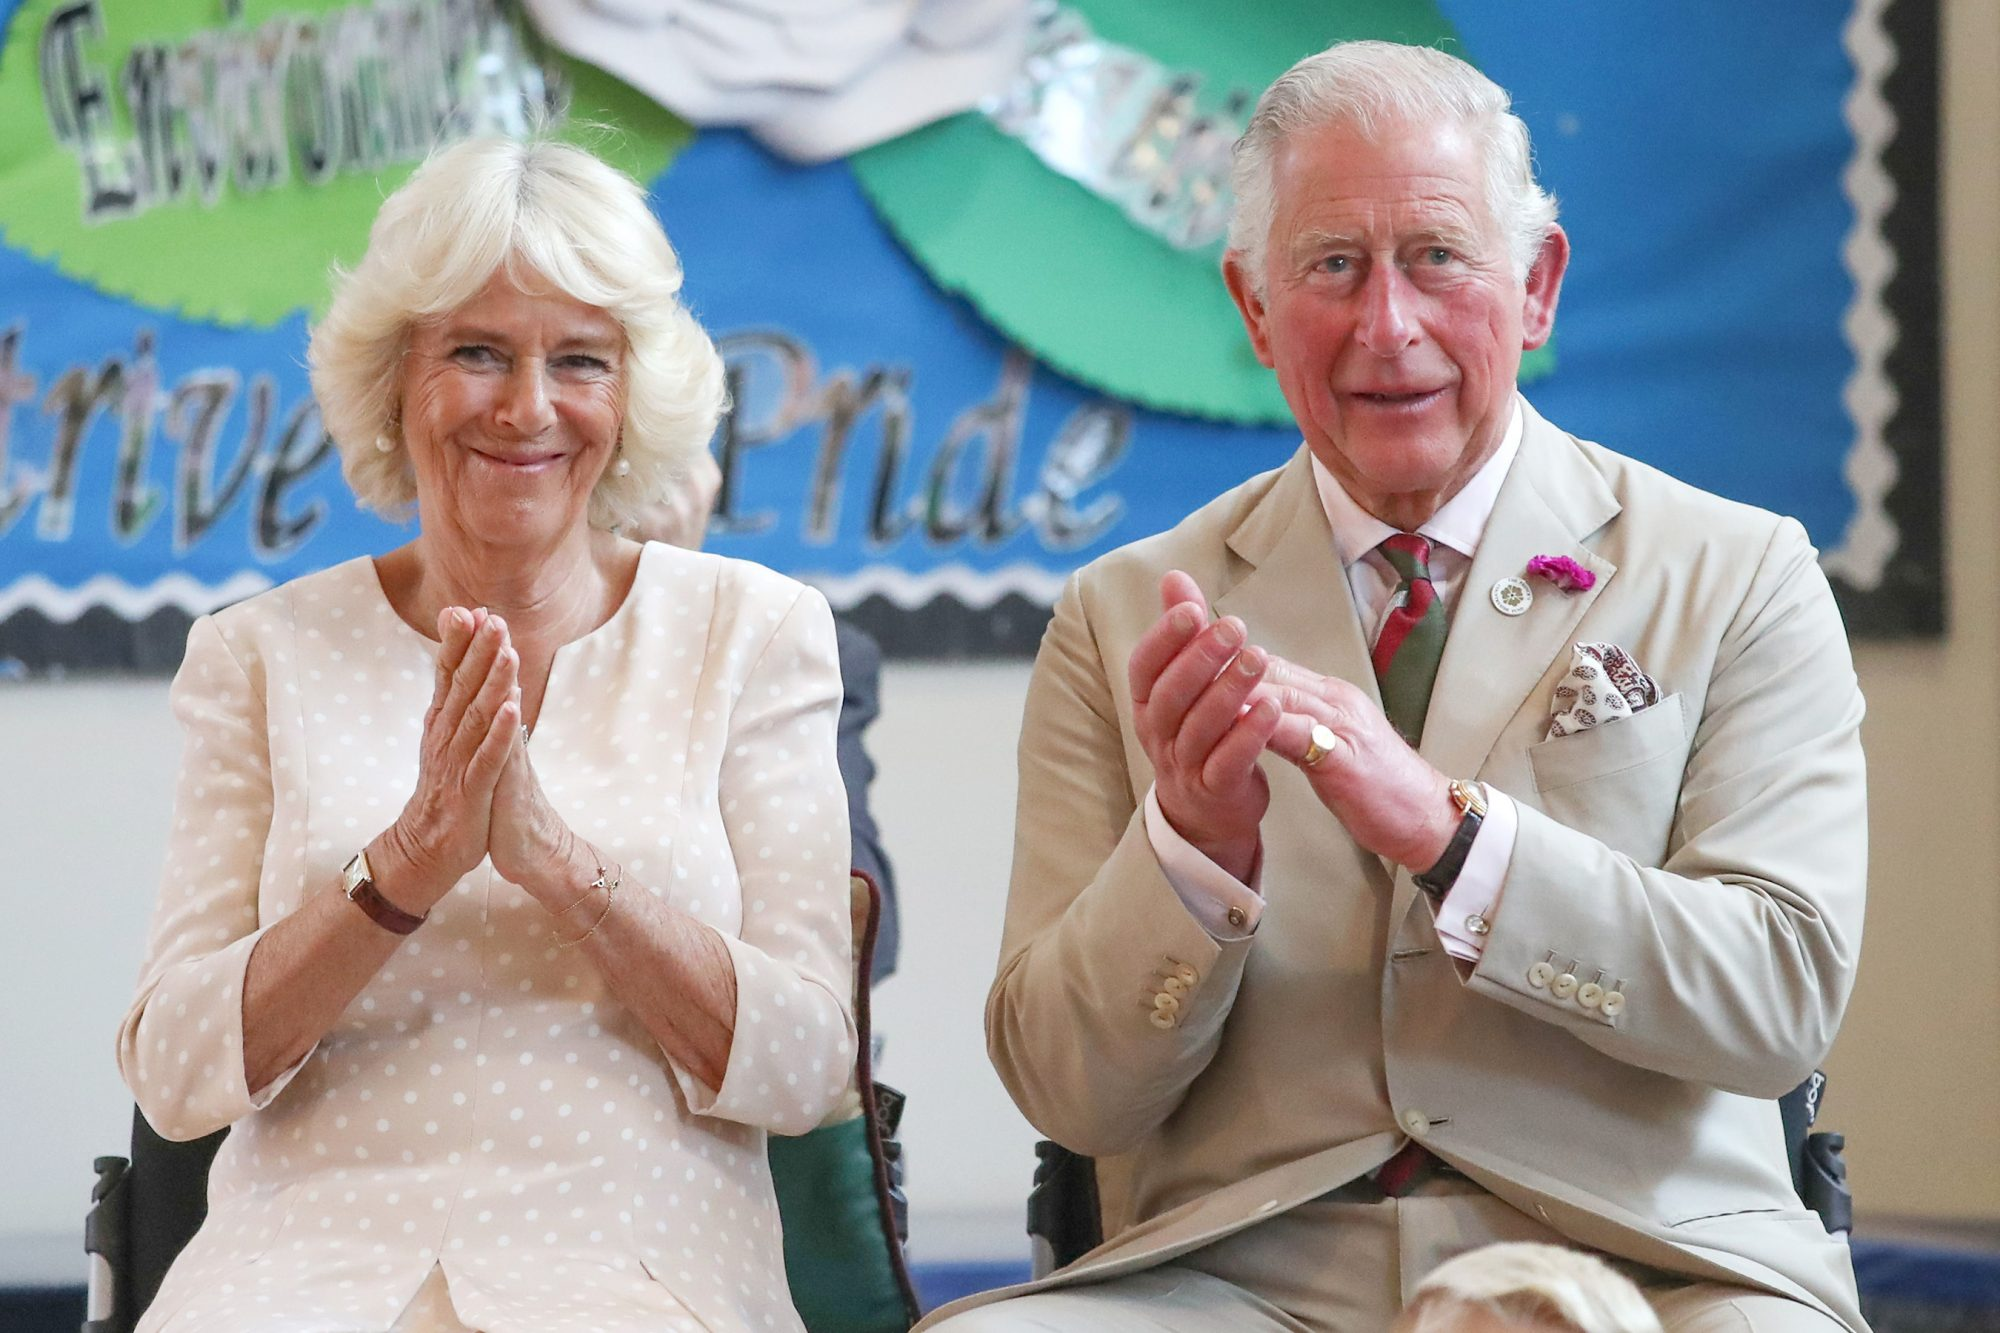 Prince Charles, The Prince of Wales and Camilla, the Duchess of Cornwall